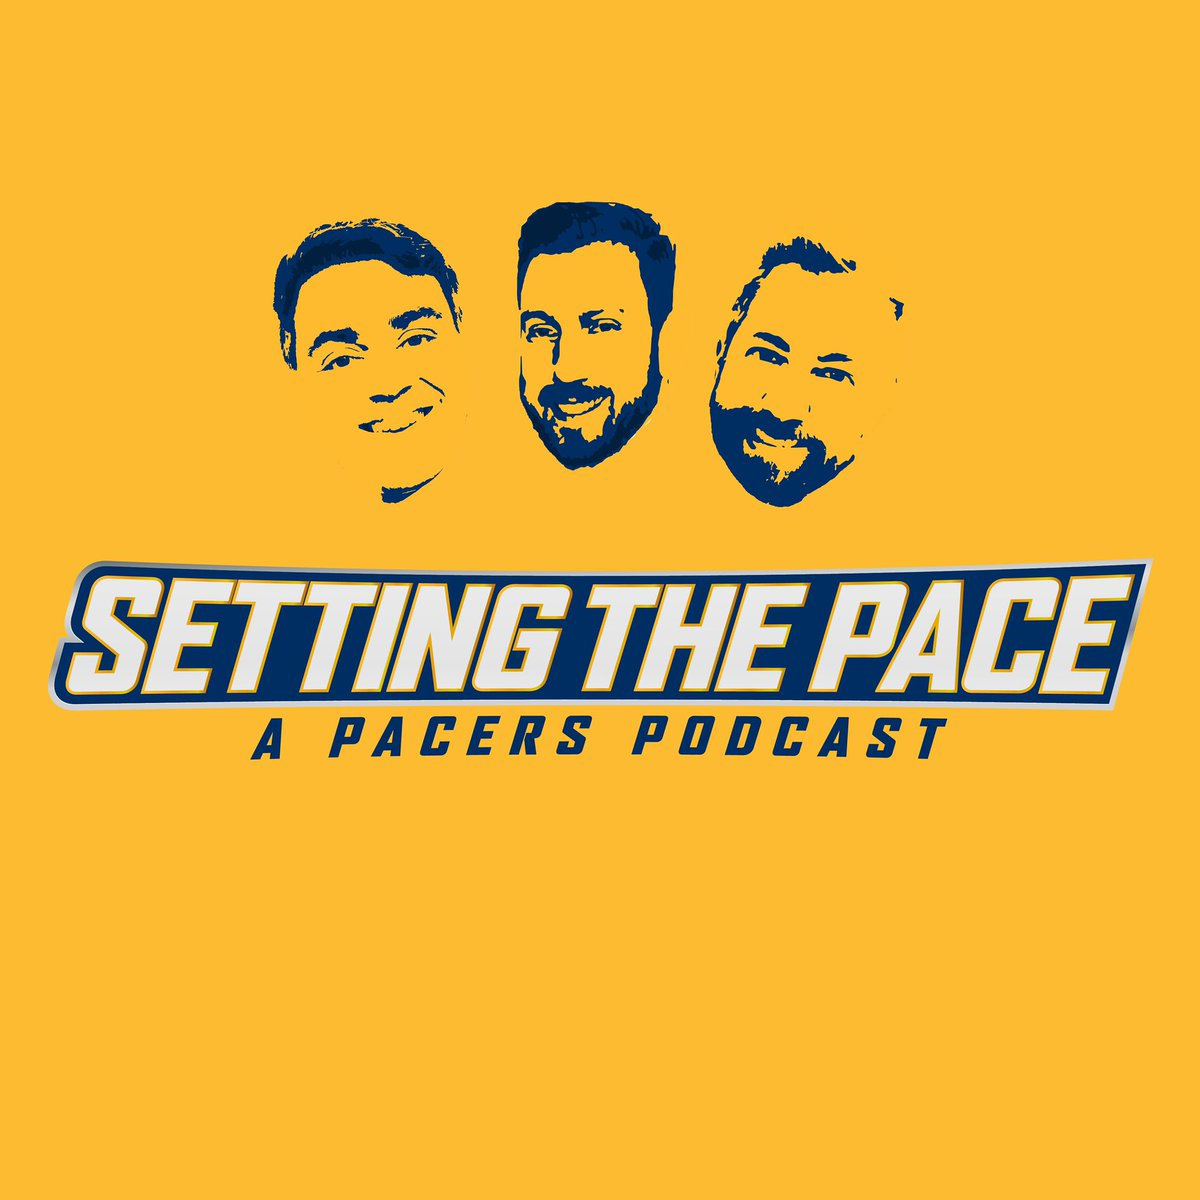 Although the playoffs didn't go as planned, it was a successful season for the #Pacers  Now that the offseason is officially here, @SettingThePace3 will continue to bring you Pacers content  We'll discuss the season, potential FA, have former players on & are launching a website!